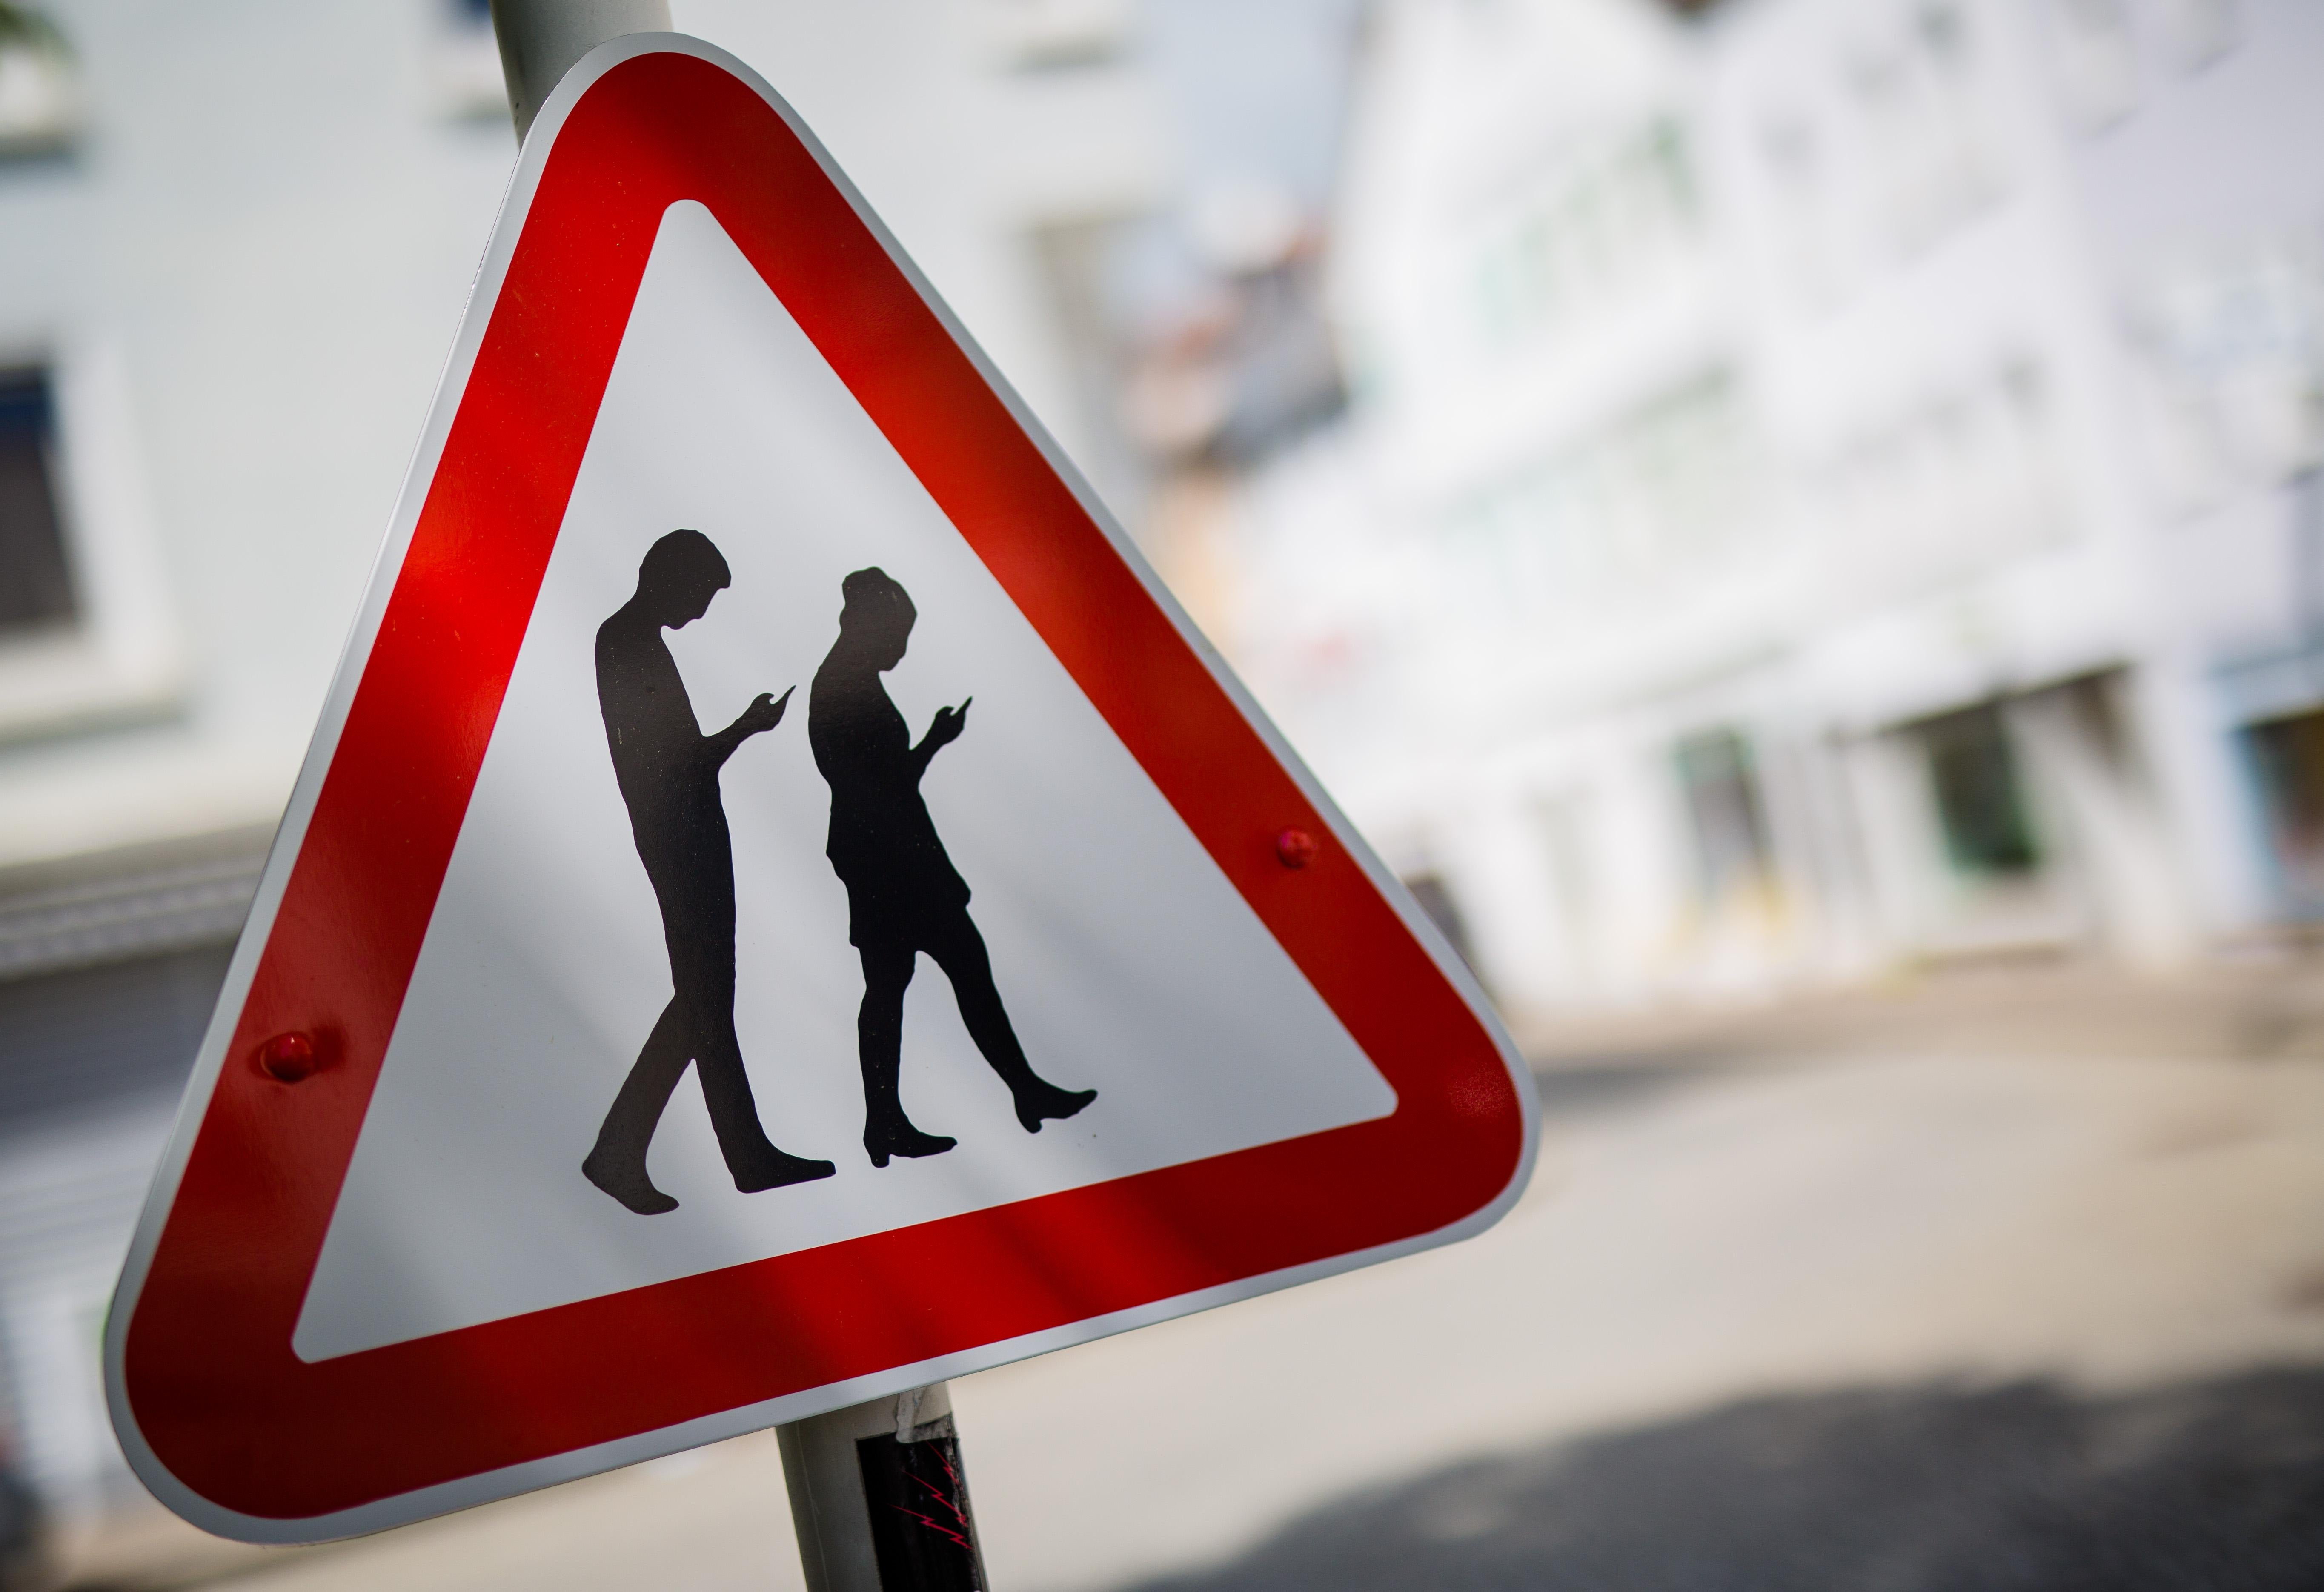 A modified caution sign that depicts two people walking while looking down at their phones.